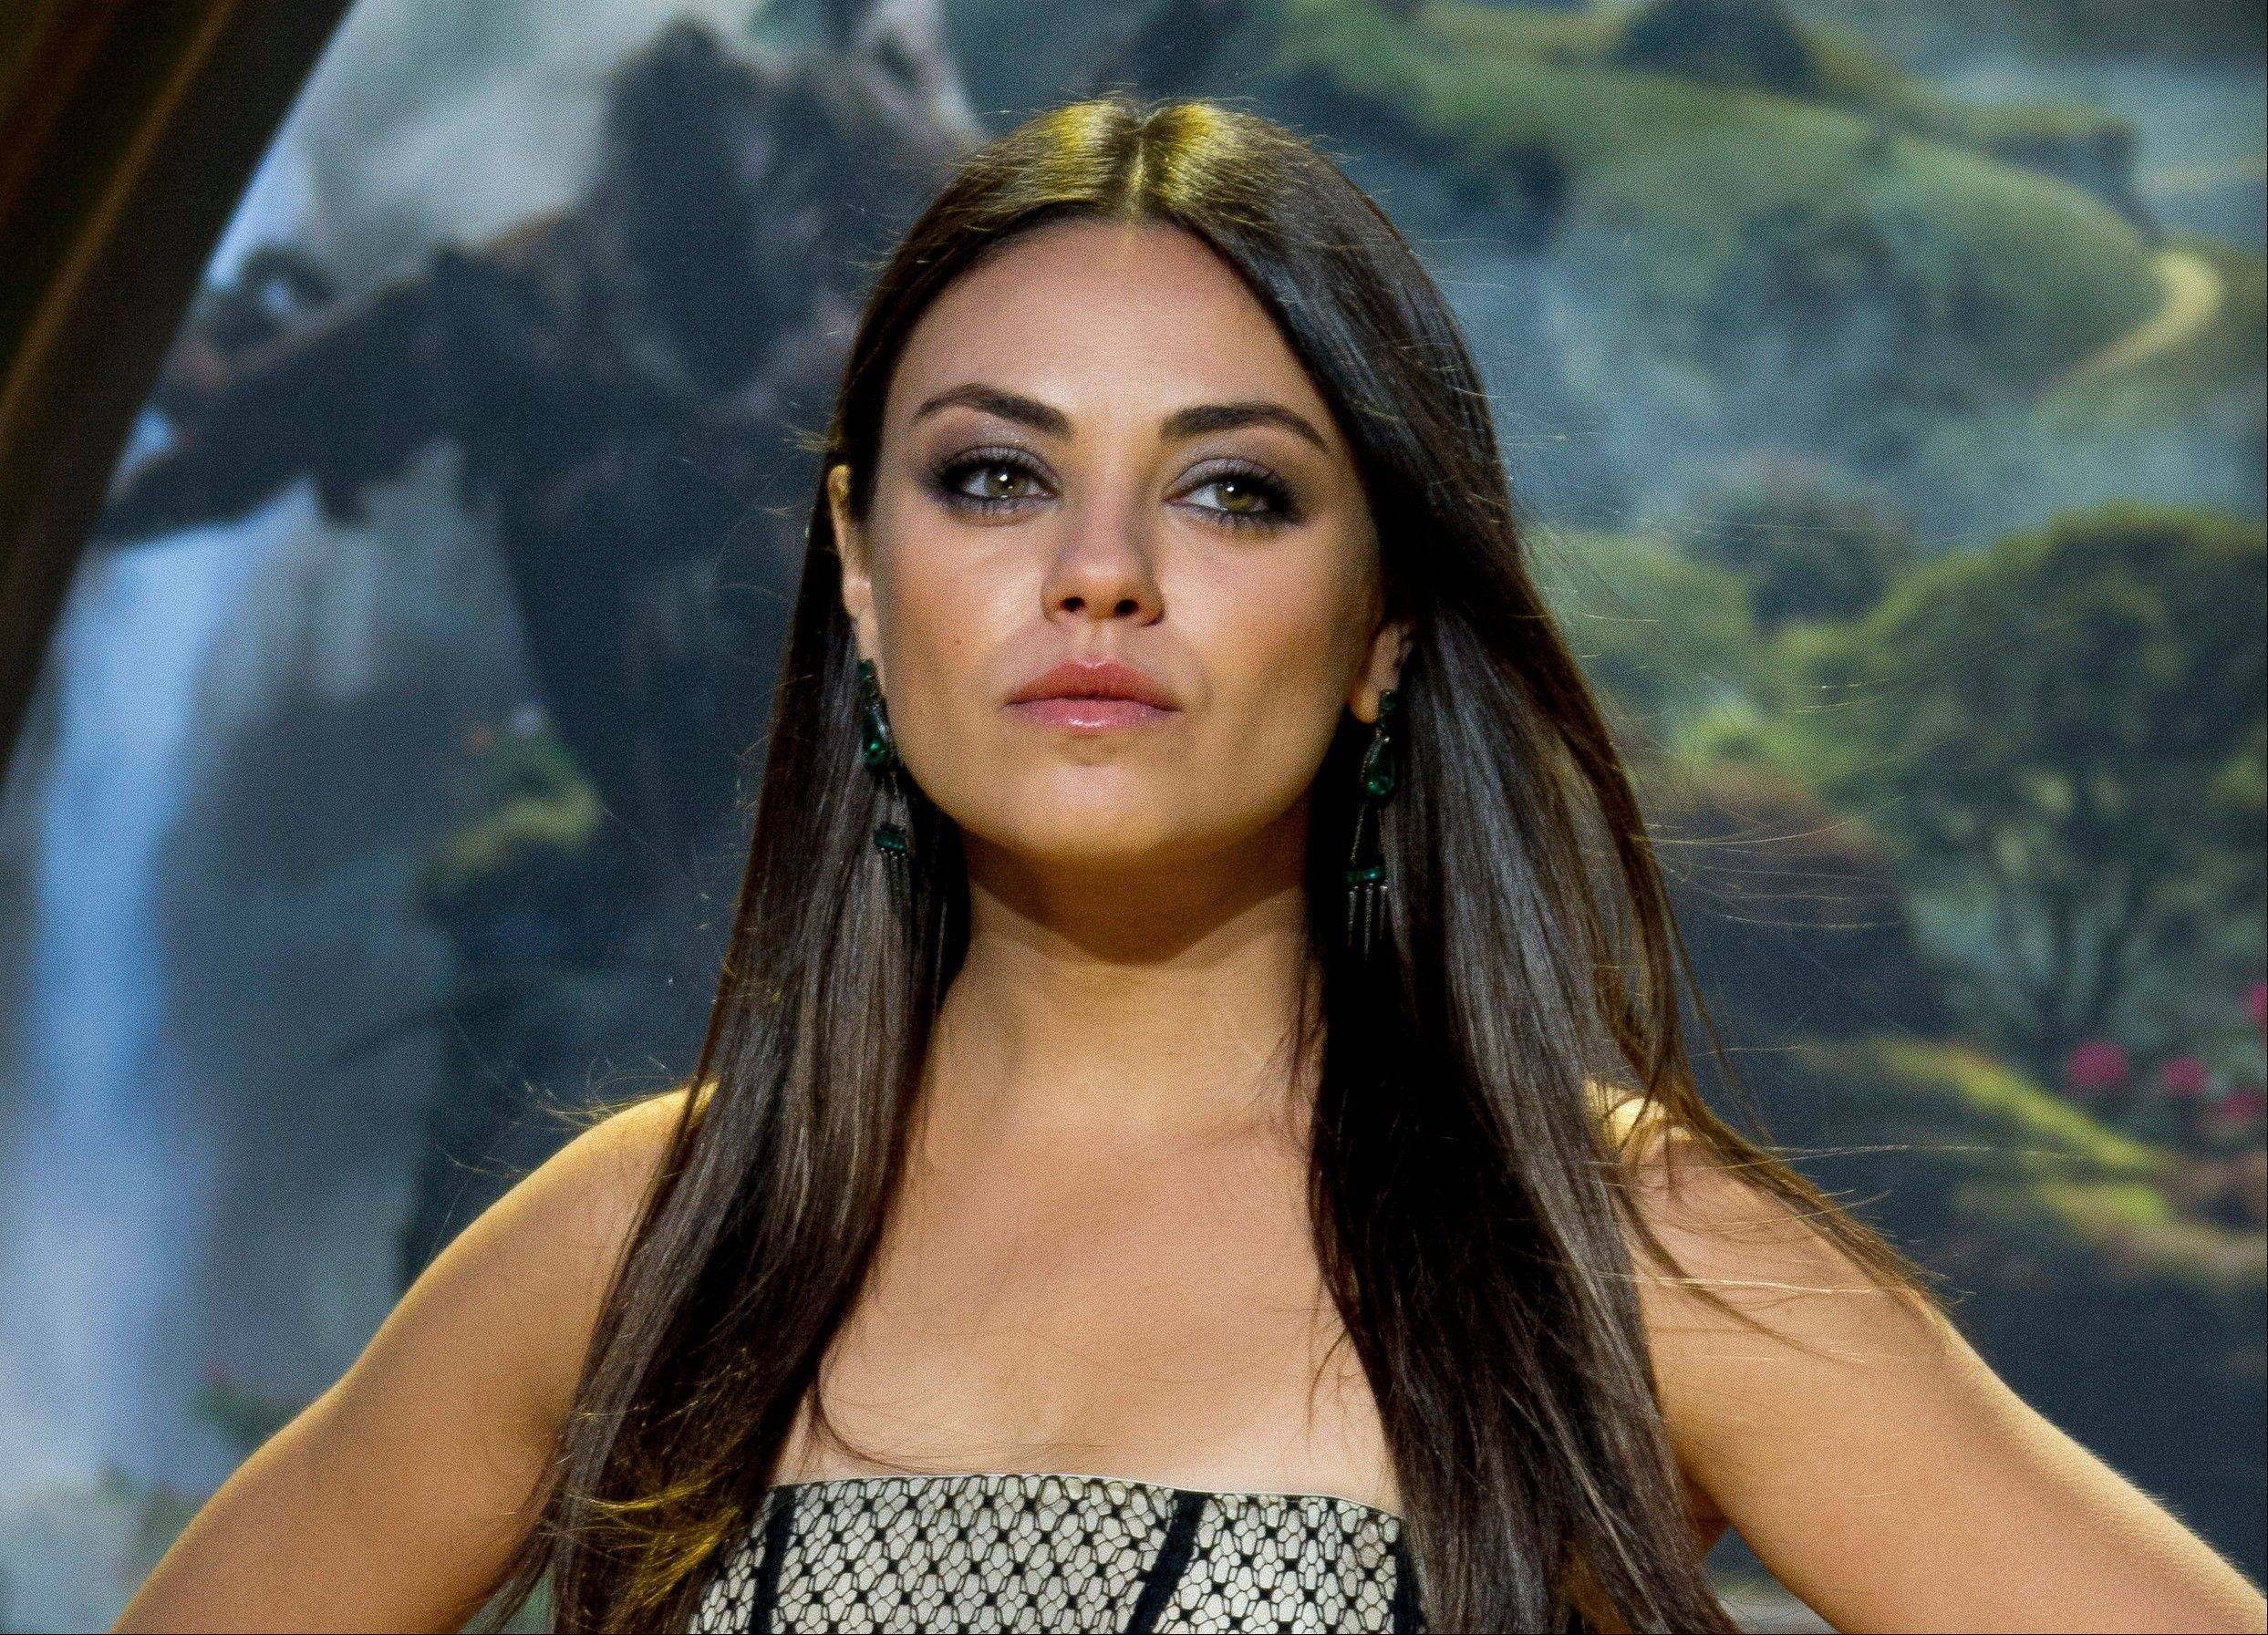 Actress Mila Kunis� stardom and general idolization went up a notch last week, and you would think this is because she stars in the biggest movie of the year so far. But �Oz: The Great And Powerful,� which debuted with $79.1 million at the box office, had hardly anything to do with the sudden rush of adulation that engulfed Kunis. Instead, it was a seven-minute viral video that�s been watched more than 10 million times and blogged about the world over.